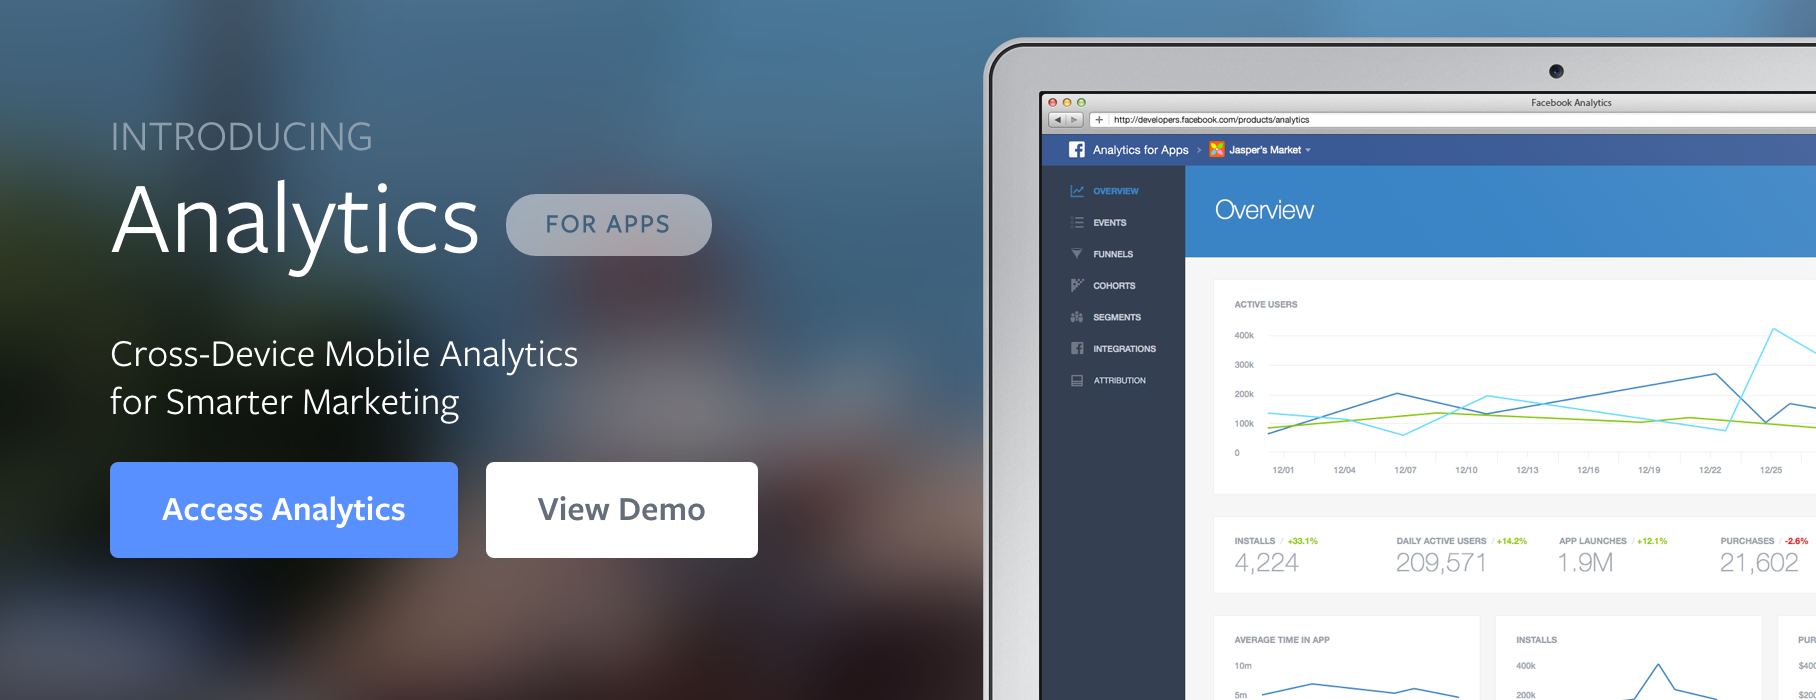 Facebook Launches a Free Analytics for Apps Tool